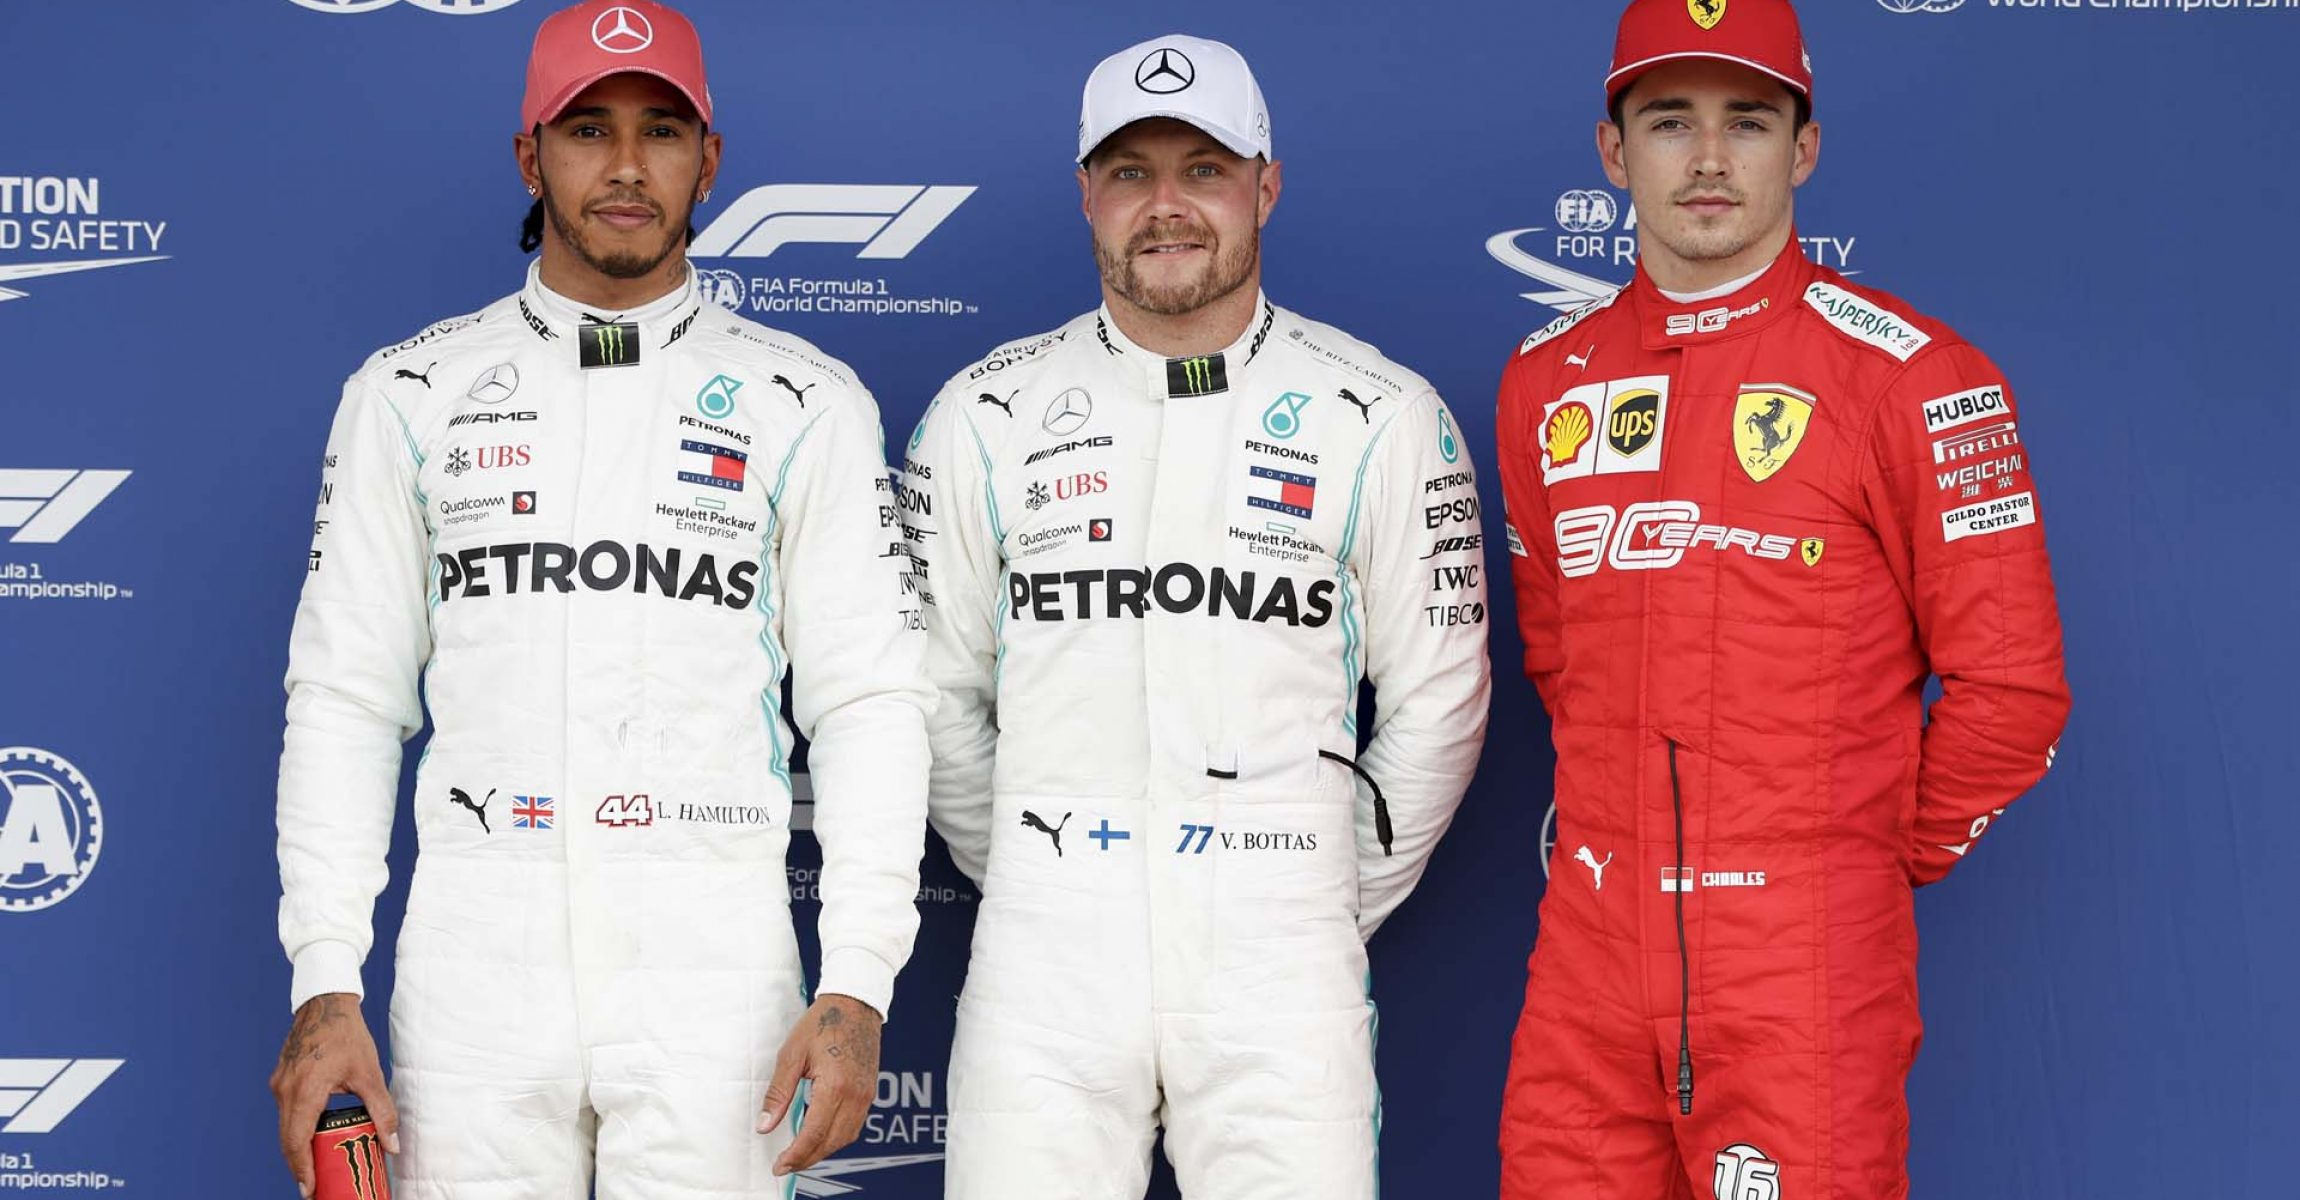 SILVERSTONE, UNITED KINGDOM - JULY 13: Lewis Hamilton, Mercedes AMG F1, Pole Sitter Valtteri Bottas, Mercedes AMG F1 and Charles Leclerc, Ferrari in Parc Ferme during the British GP at Silverstone on July 13, 2019 in Silverstone, United Kingdom. (Photo by Zak Mauger / LAT Images)